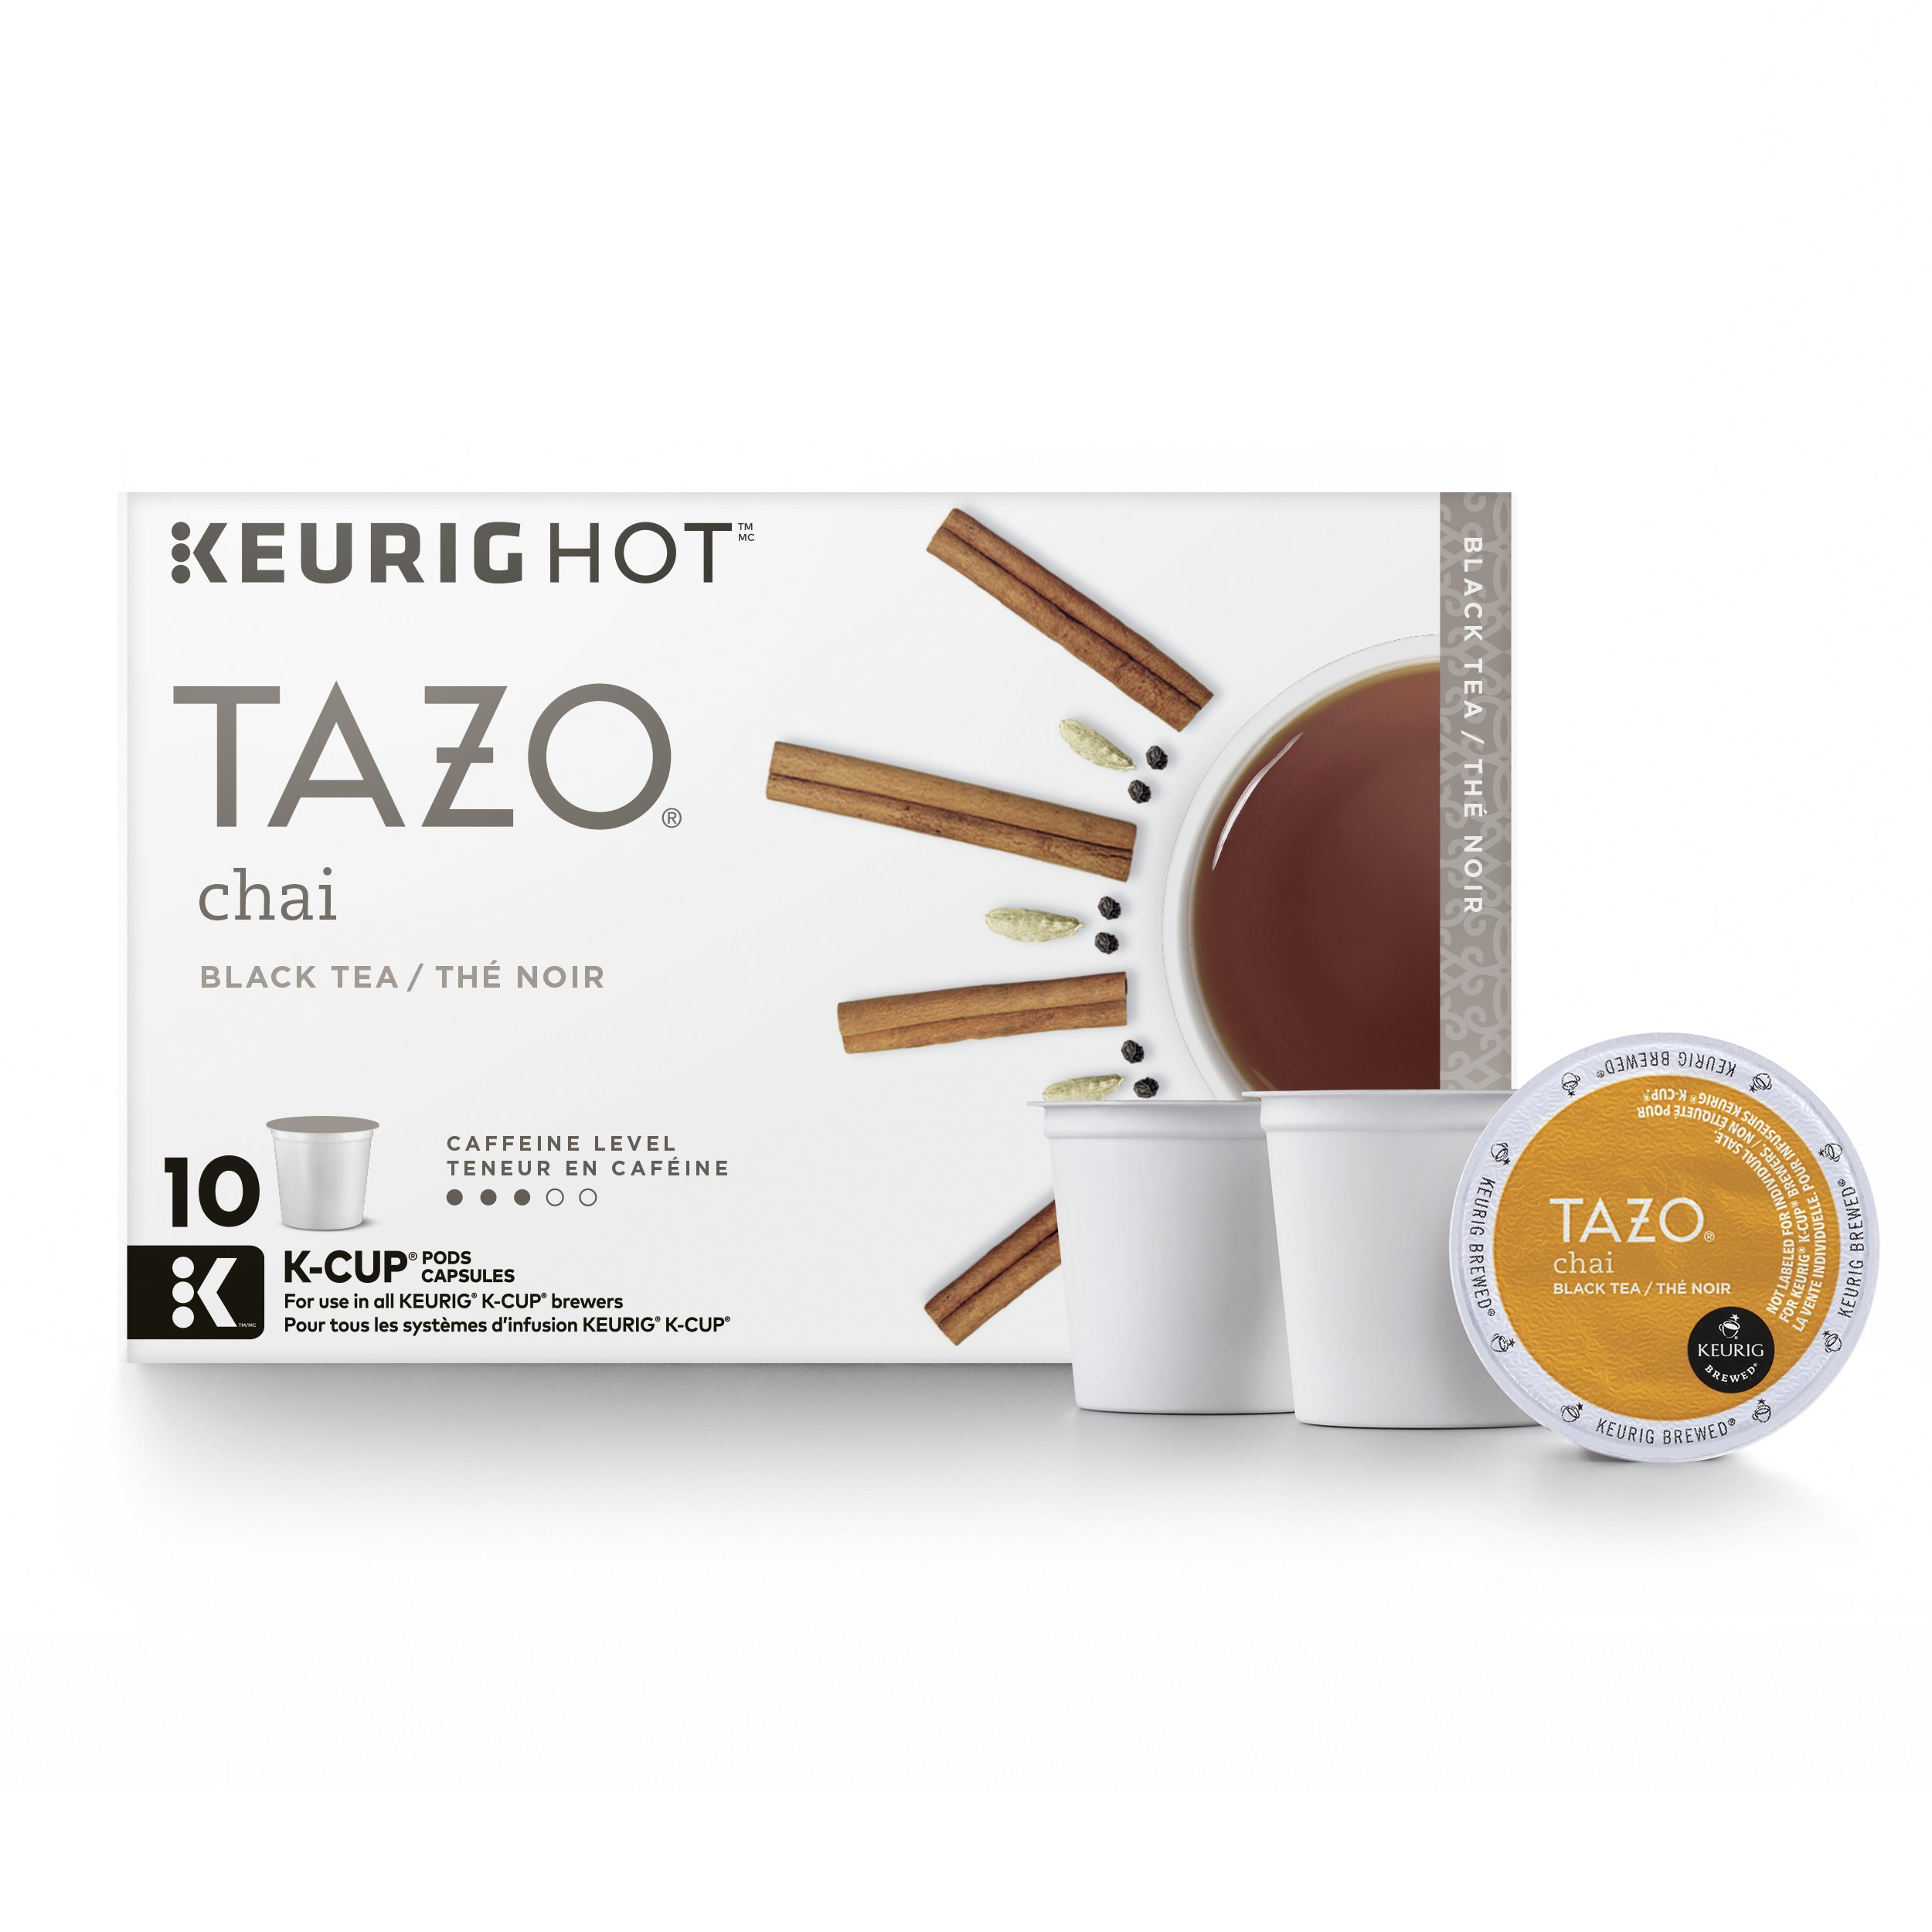 Tazo Chai Black Tea K-Cup, 10 ct (Pack of 6) by TAZO (Image #1)